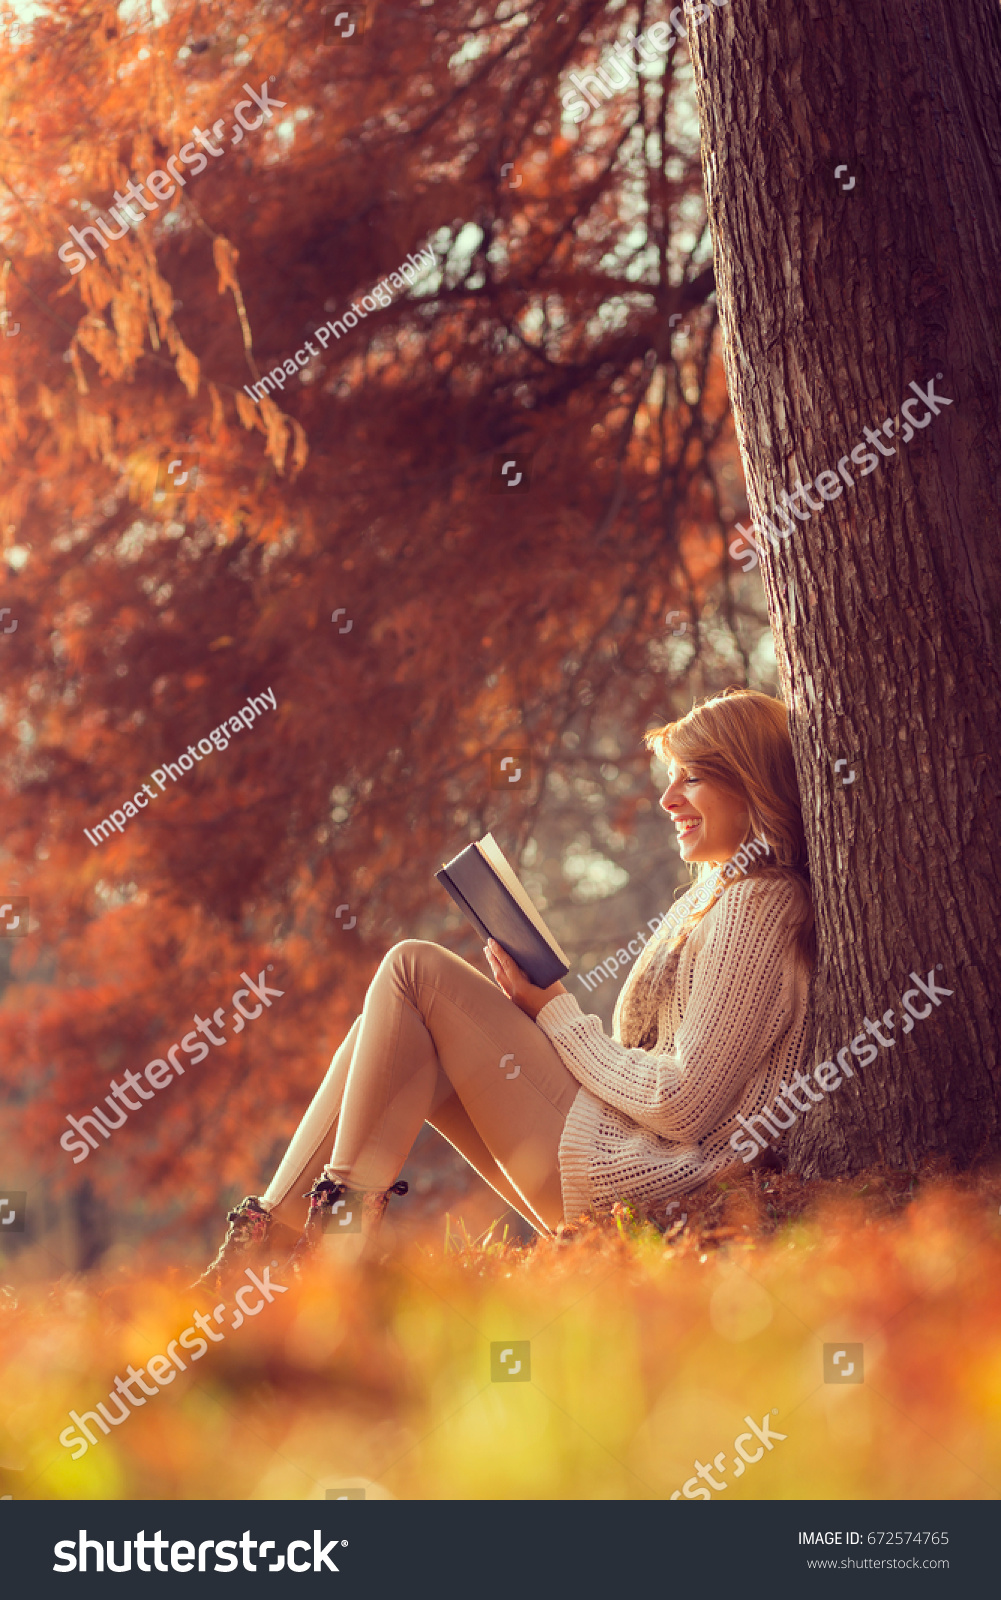 From the book where you might see the beautiful autumn leaves - Beautiful Young Brunette Sitting On A Fallen Autumn Leaves In A Park Reading A Book